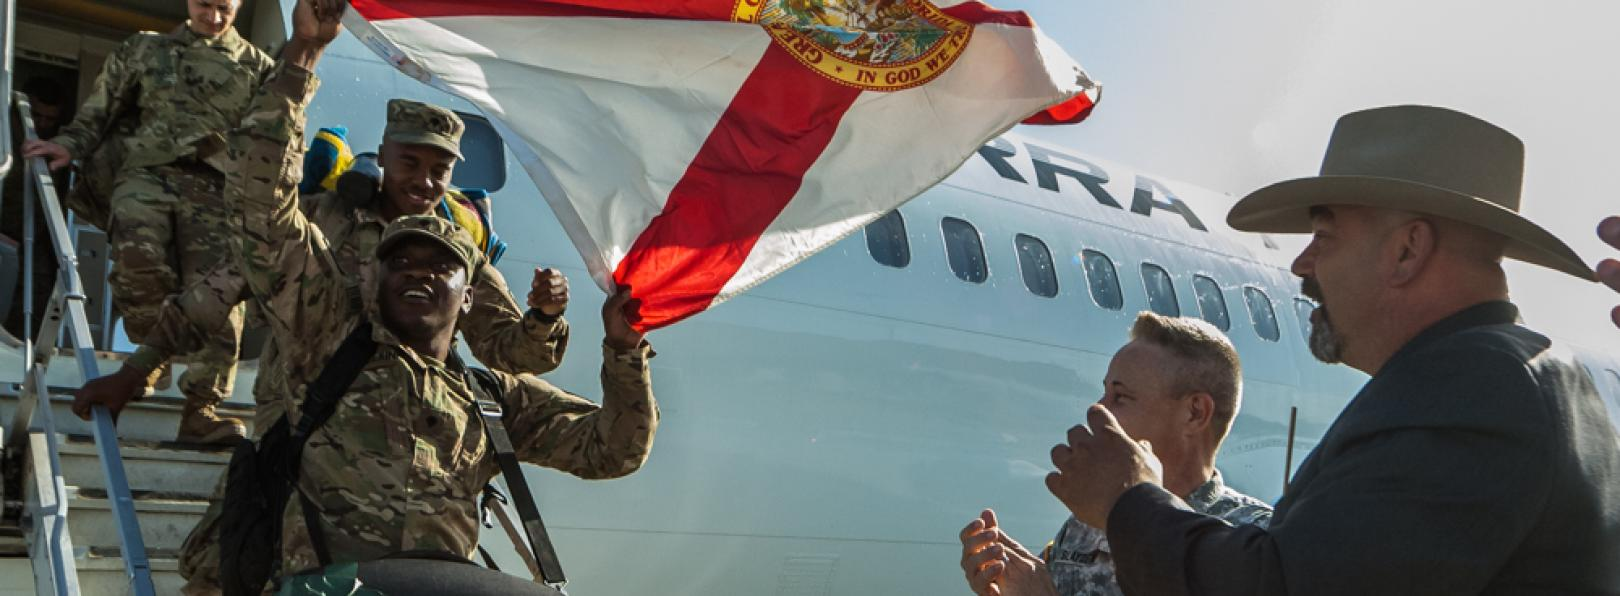 Soldiers Getting Off Plane